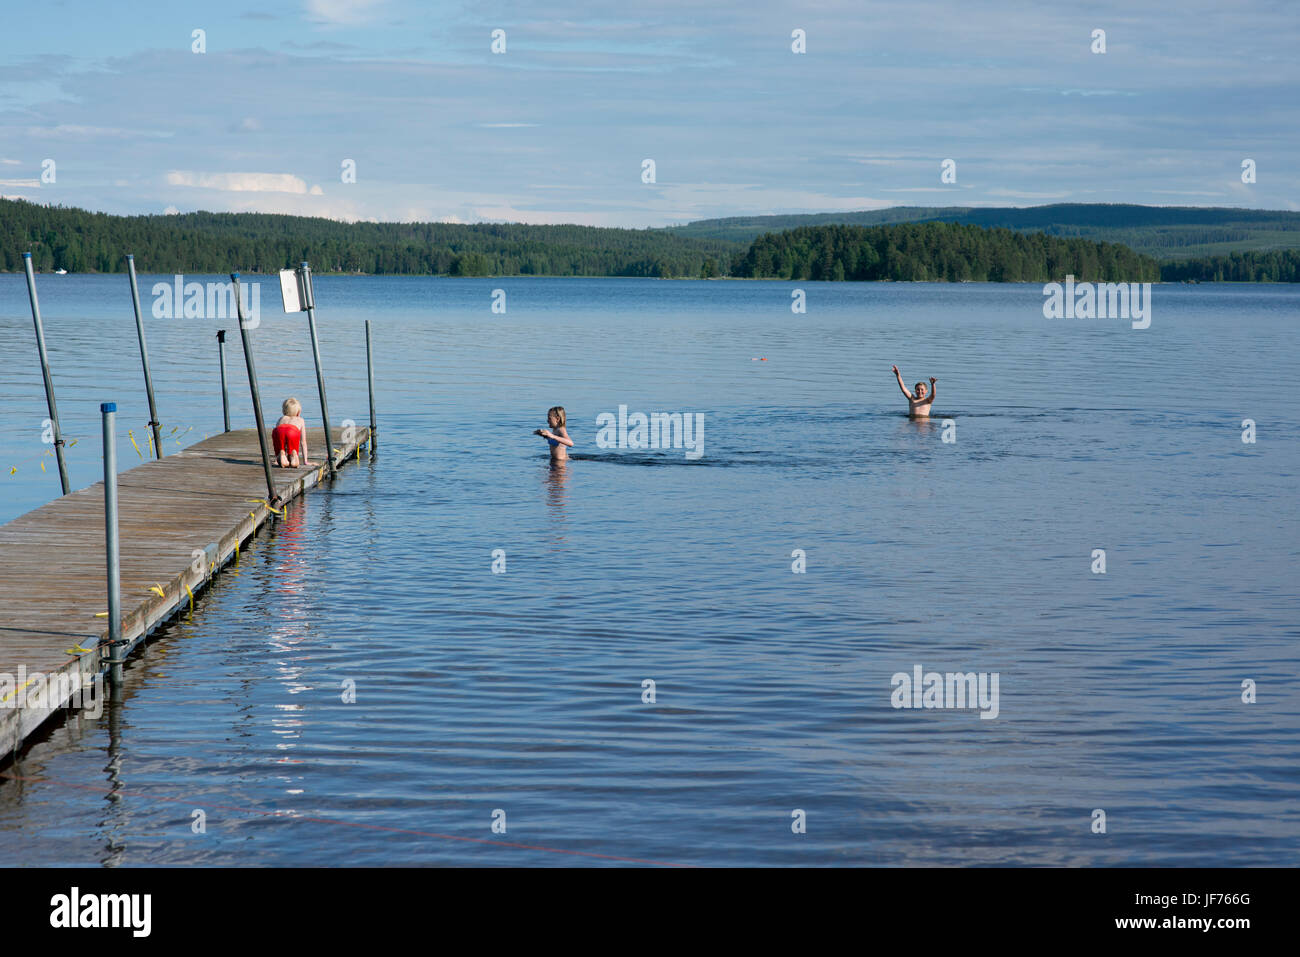 Three boys swimming in lake - Stock Image